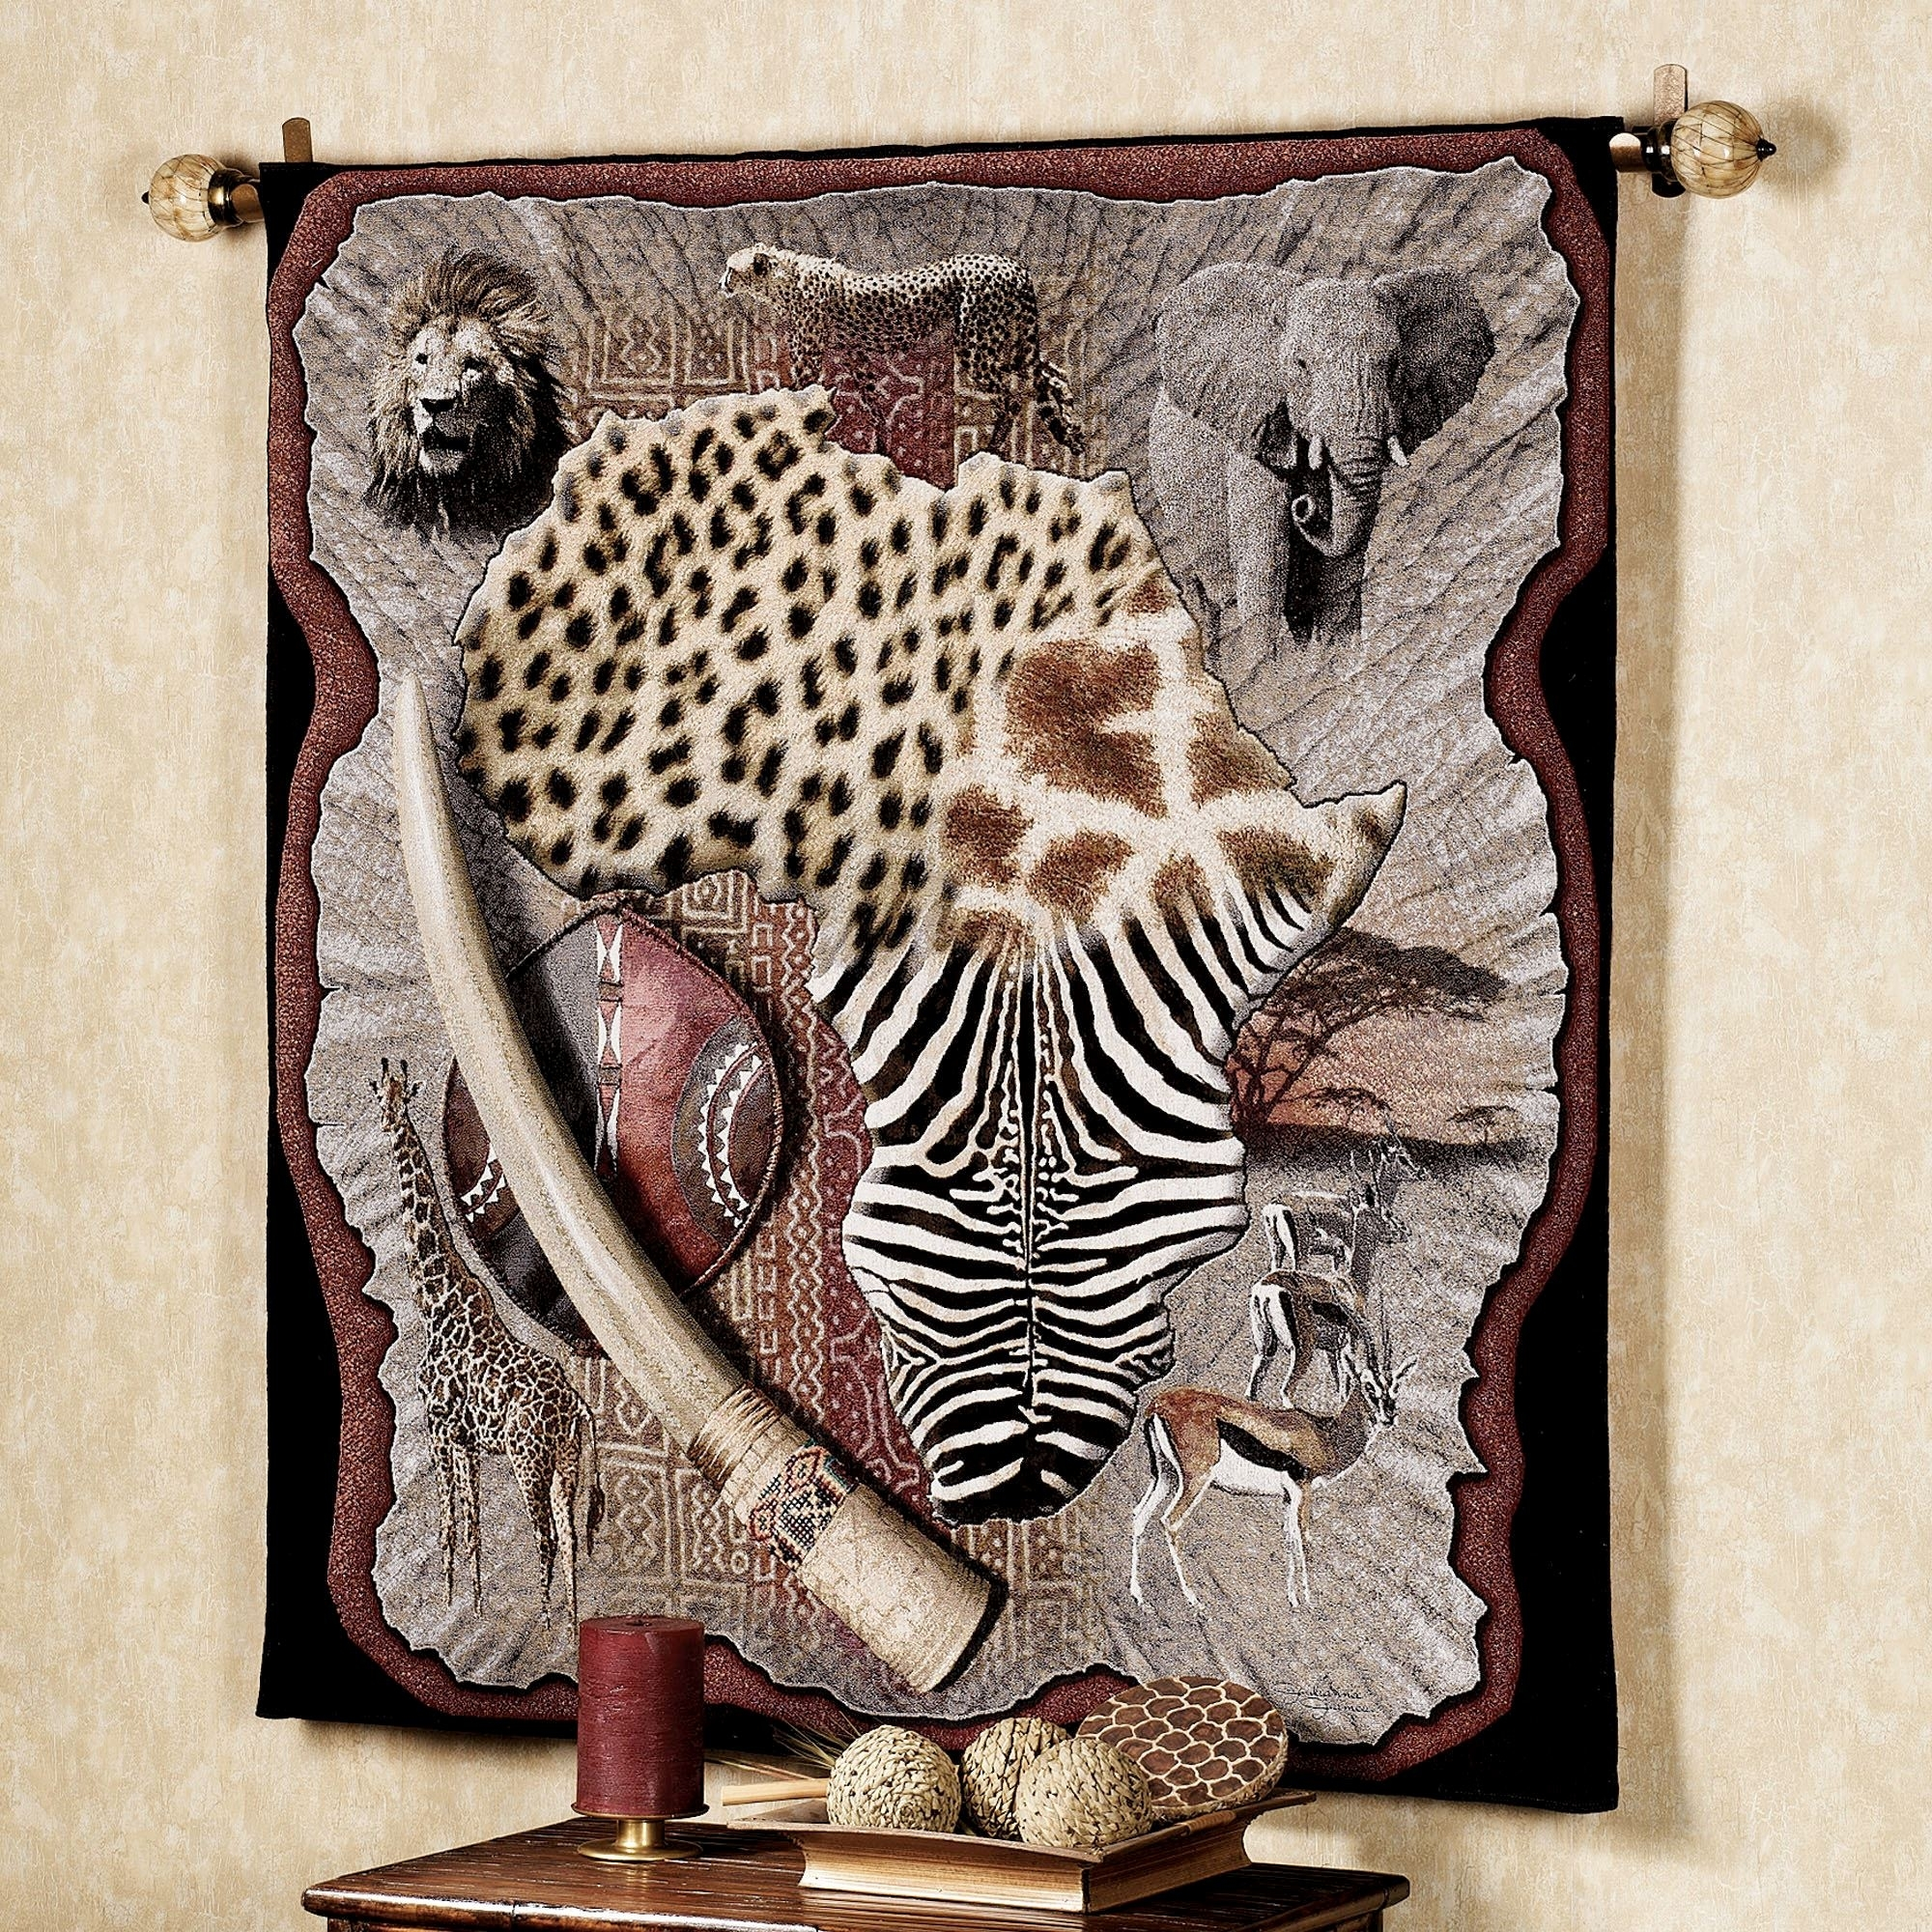 African Wall Art Ideal Decor And Plus Decoration Scenic Images intended for African Wall Art (Image 6 of 20)